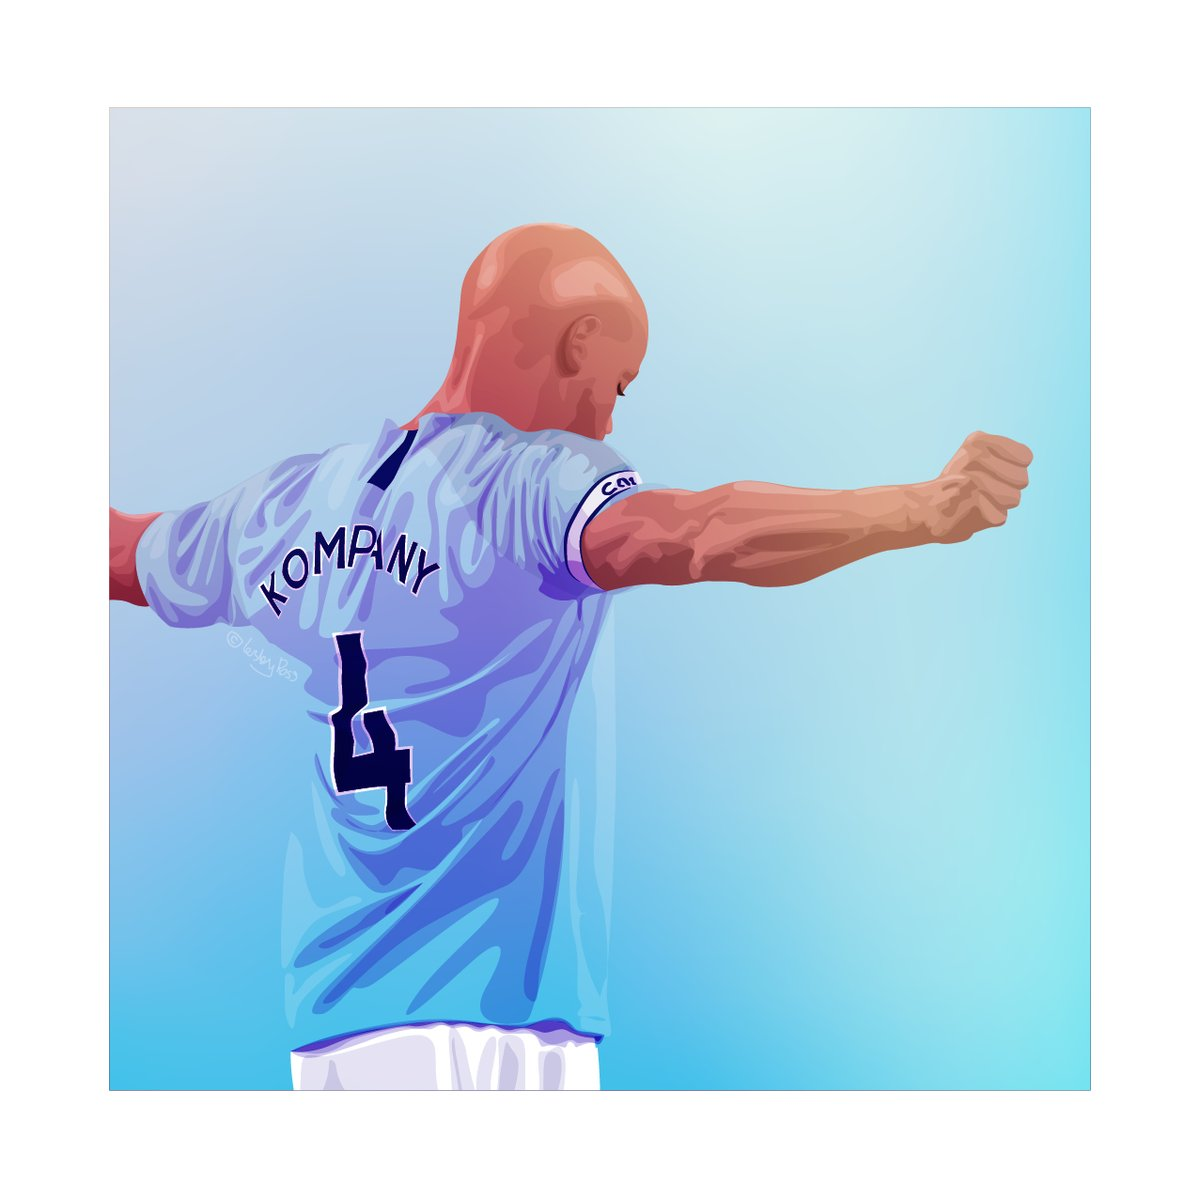 What an end to our last home game of the season & @VincentKompany last home game. The #Fourmidables Relive last ALL last seasons goals. Now half price £10 https://t.co/NXtwwbnO9P with a donation made by us to @tackle4mcr with each book sold. #ManCity #VincentKompany  Pls RT 😃 https://t.co/rQW3OtwhFY